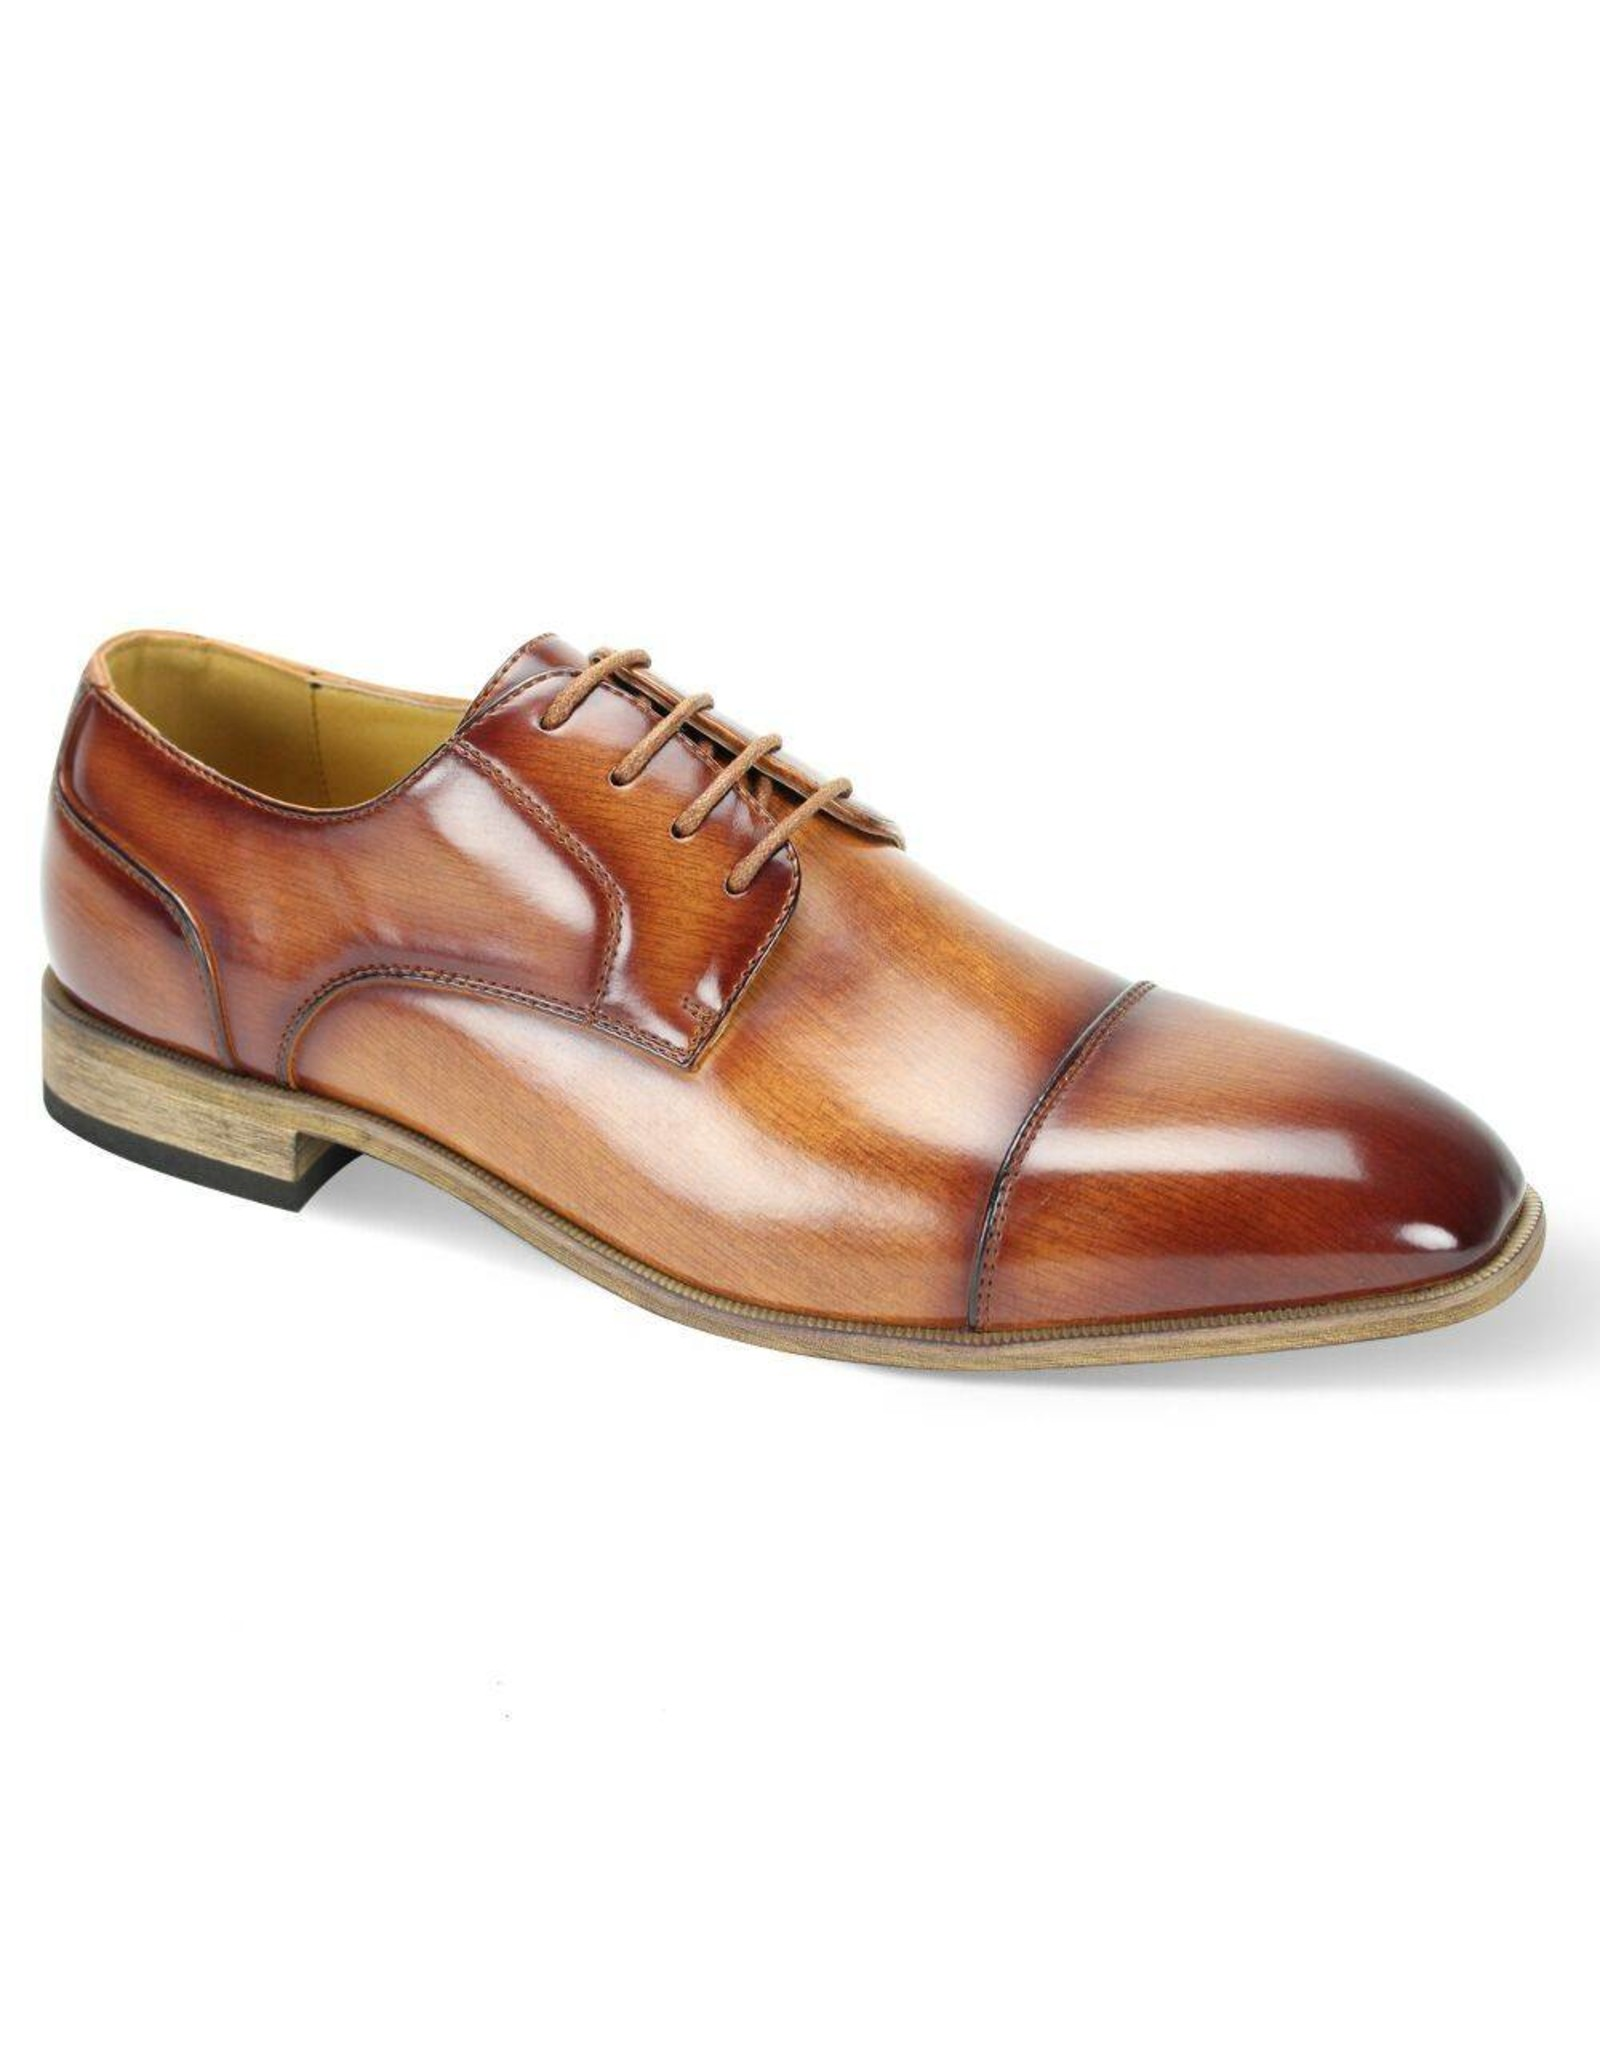 Antonio Cerrelli Antonio Cerrelli 6782 Dress Shoe - Tan